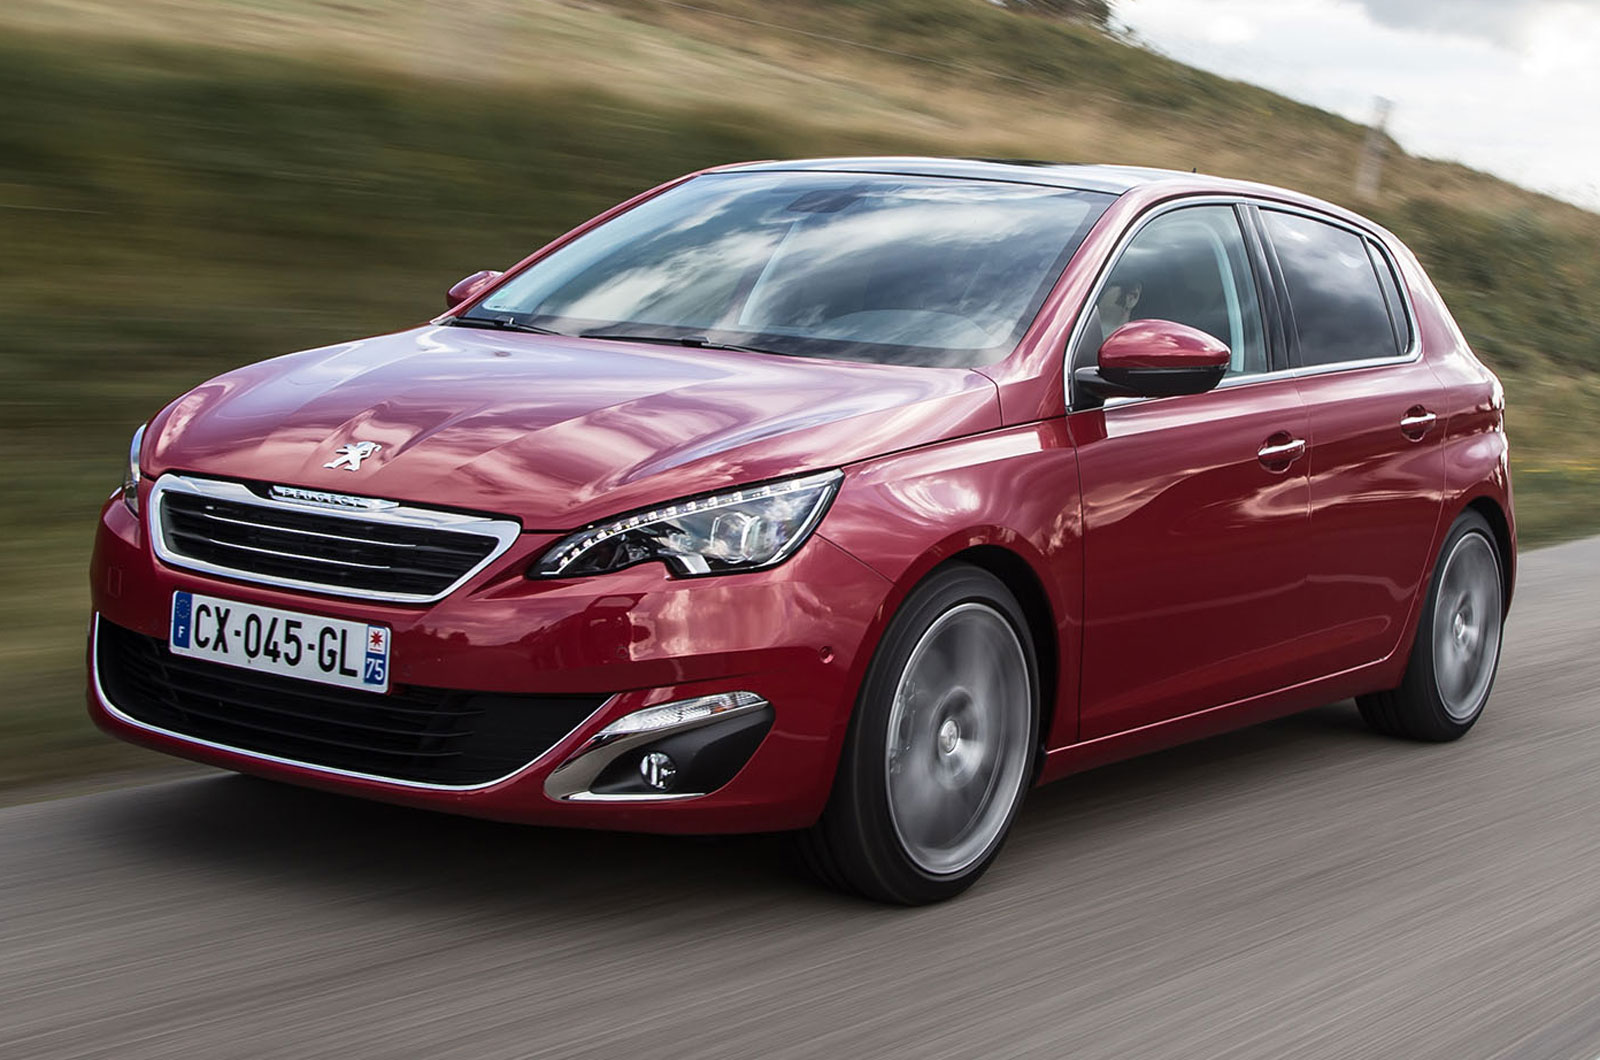 peugeot 308 allure 1 2 e thp puretech 130 auto first drive review autocar. Black Bedroom Furniture Sets. Home Design Ideas